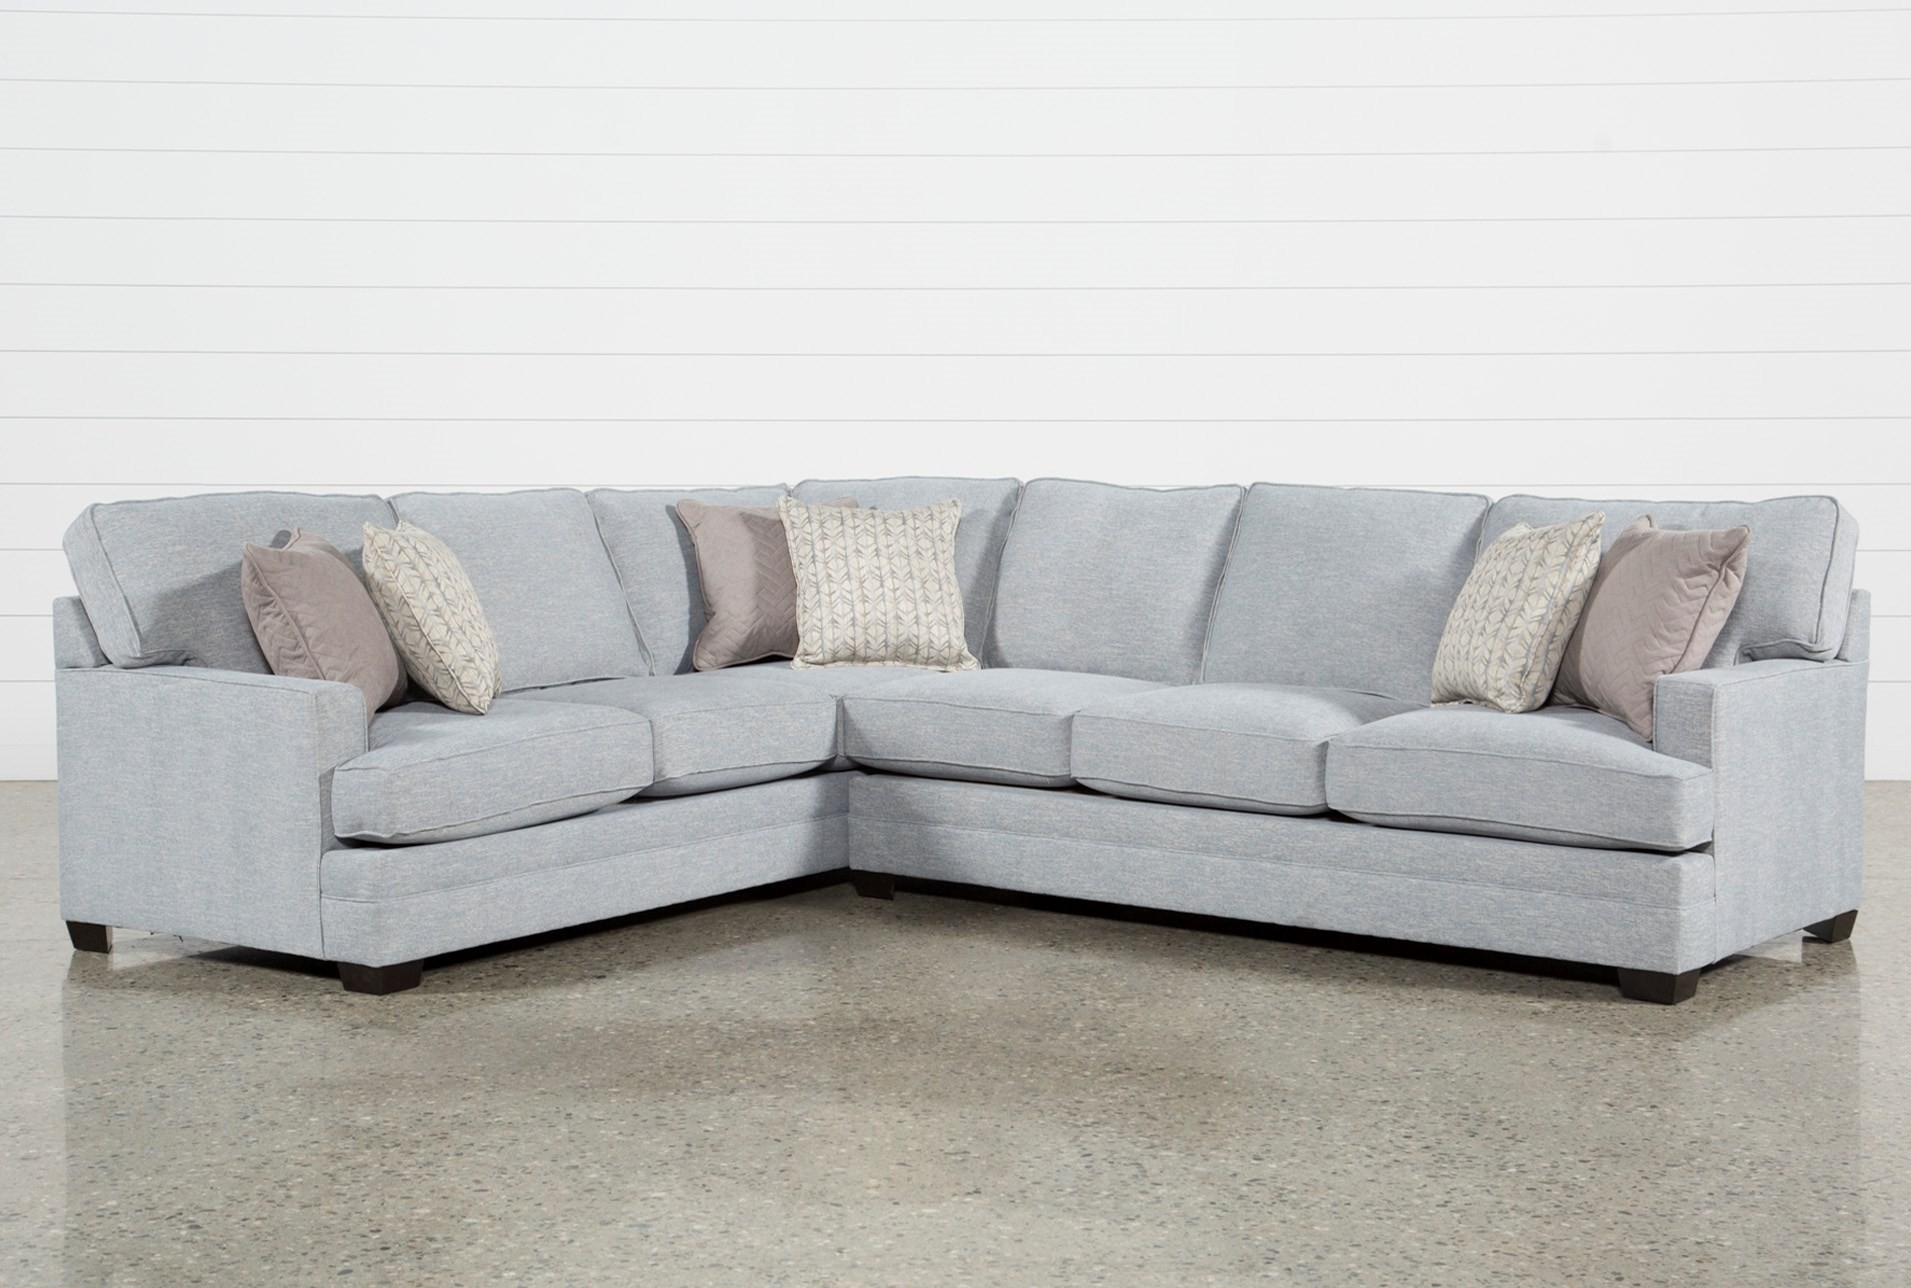 Living Spaces Sectional Cosmos Grey 2 Piece W Raf Chaise 206402 0 throughout Cosmos Grey 2 Piece Sectionals With Raf Chaise (Image 21 of 30)